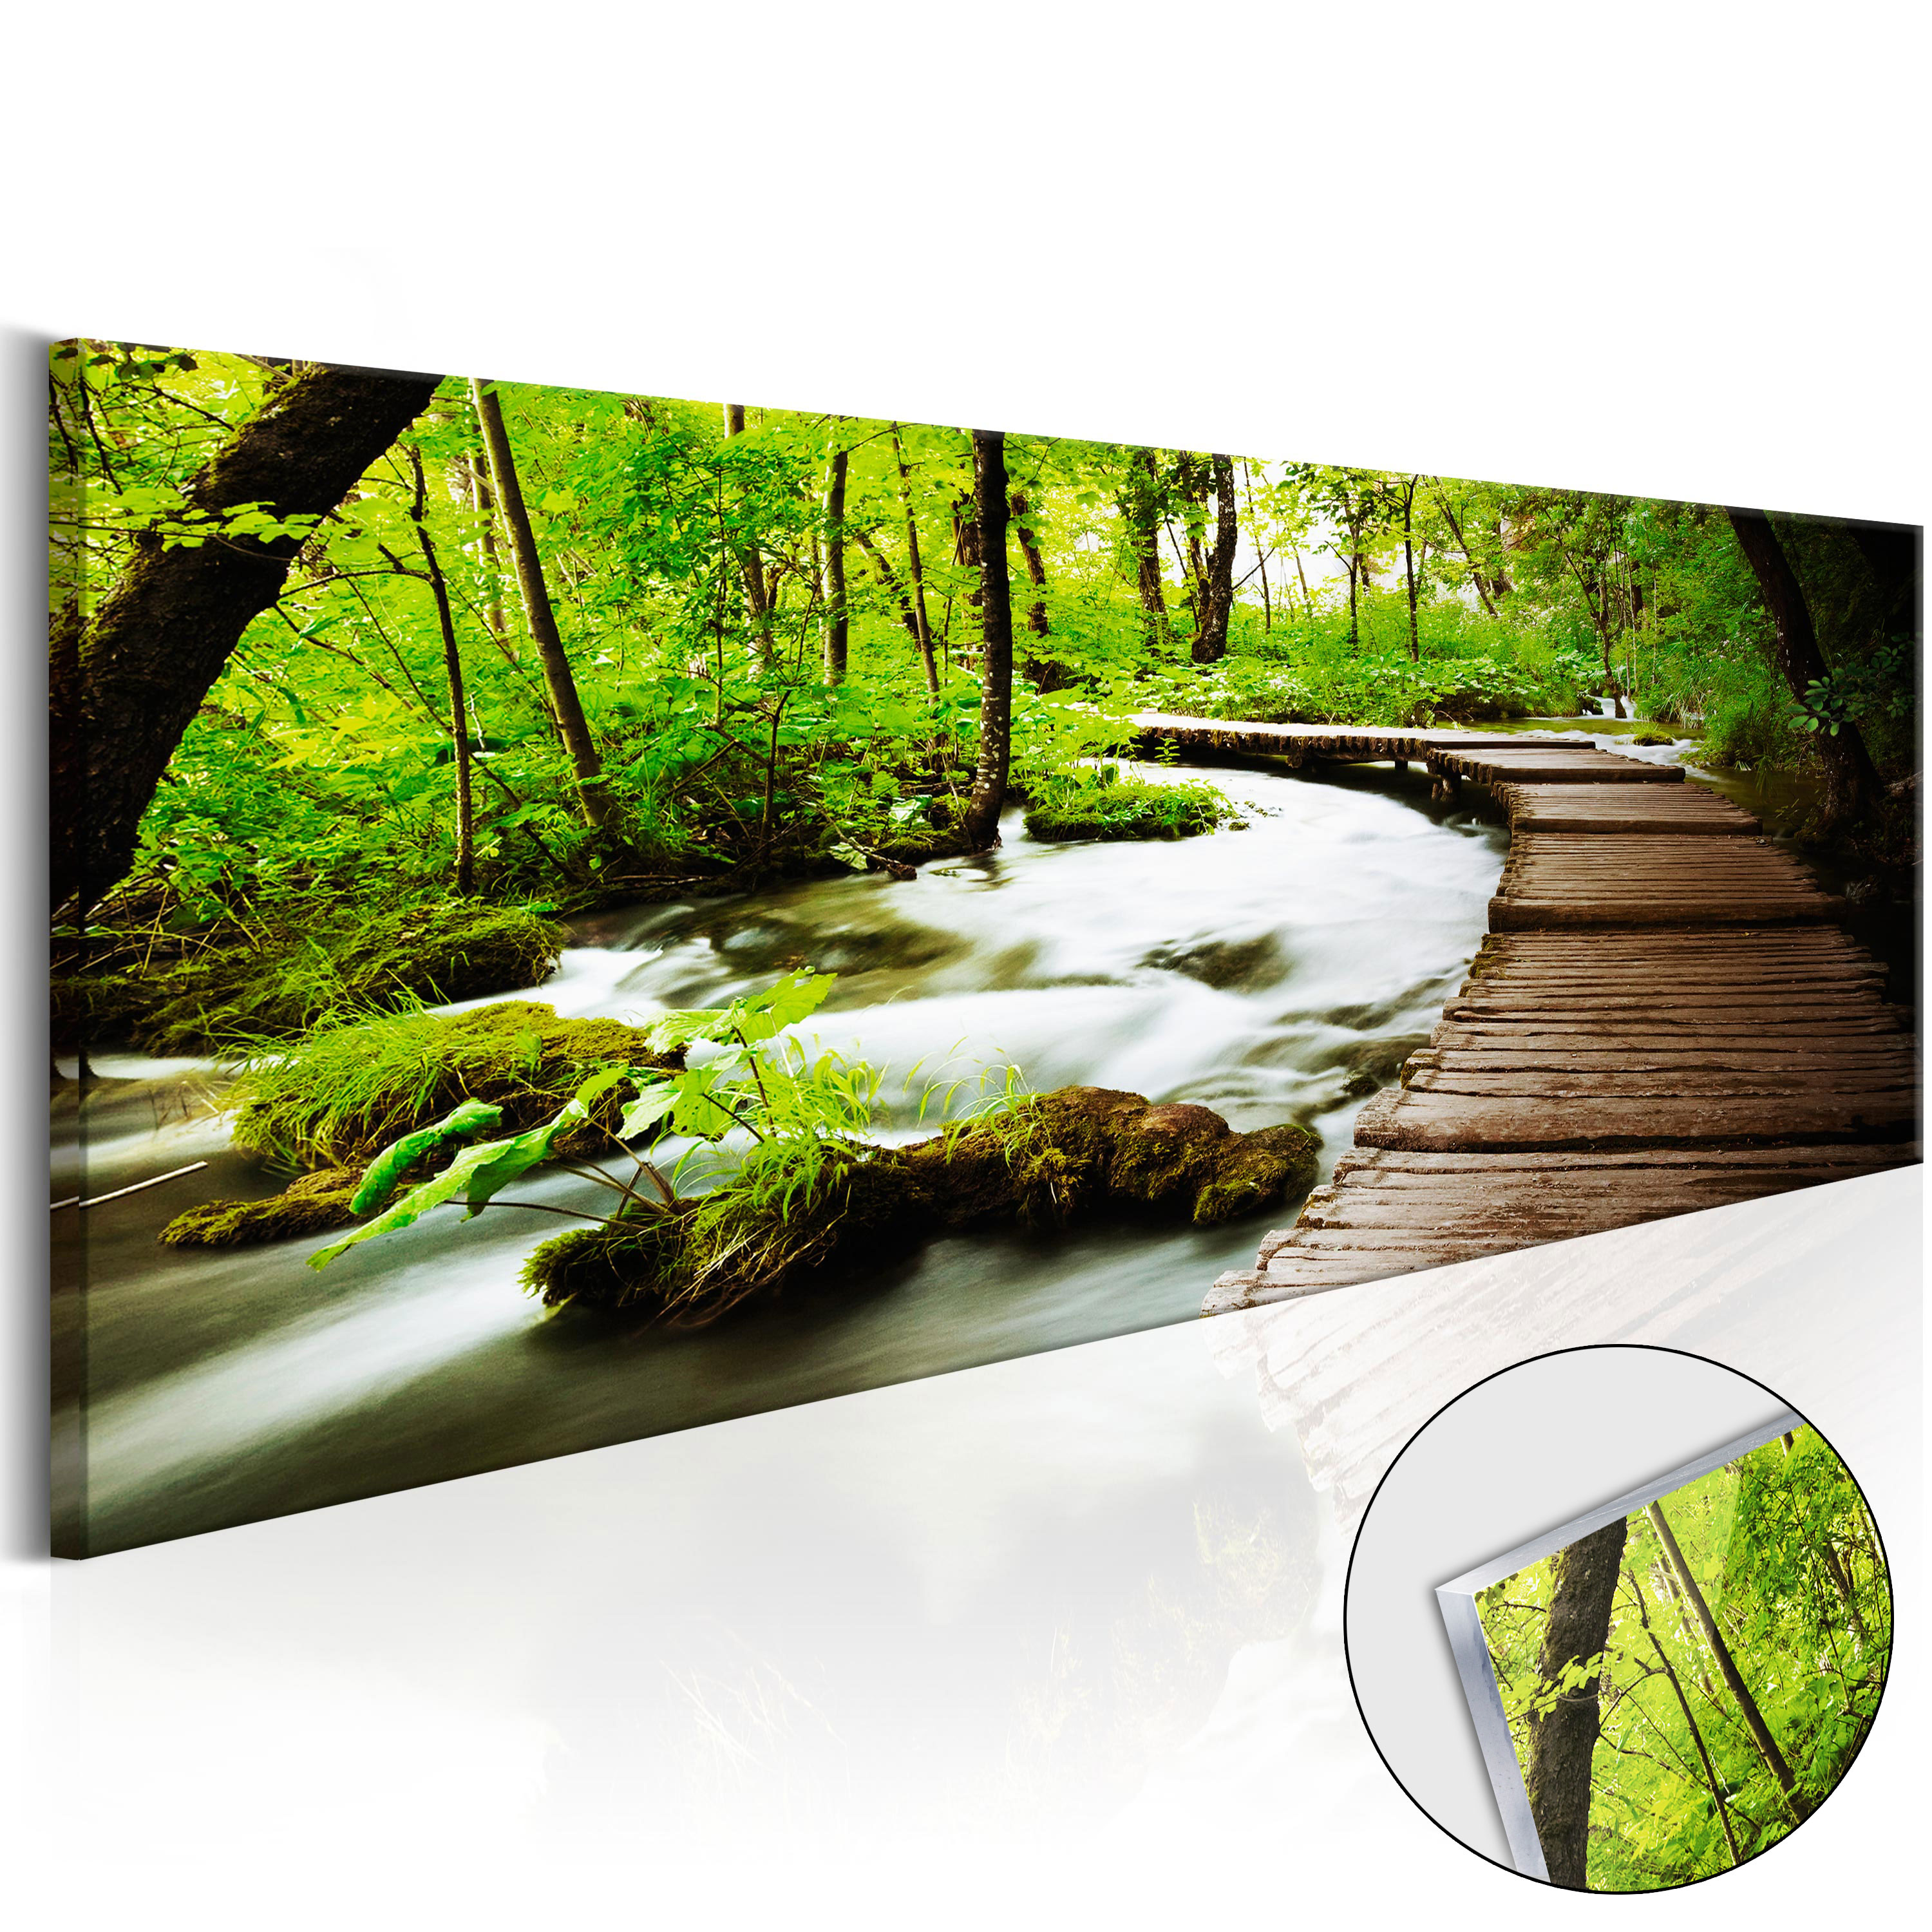 acrylglasbild wandbild kunstdruck glasbilder natur wald bach fluss c b 0161 k a ebay. Black Bedroom Furniture Sets. Home Design Ideas